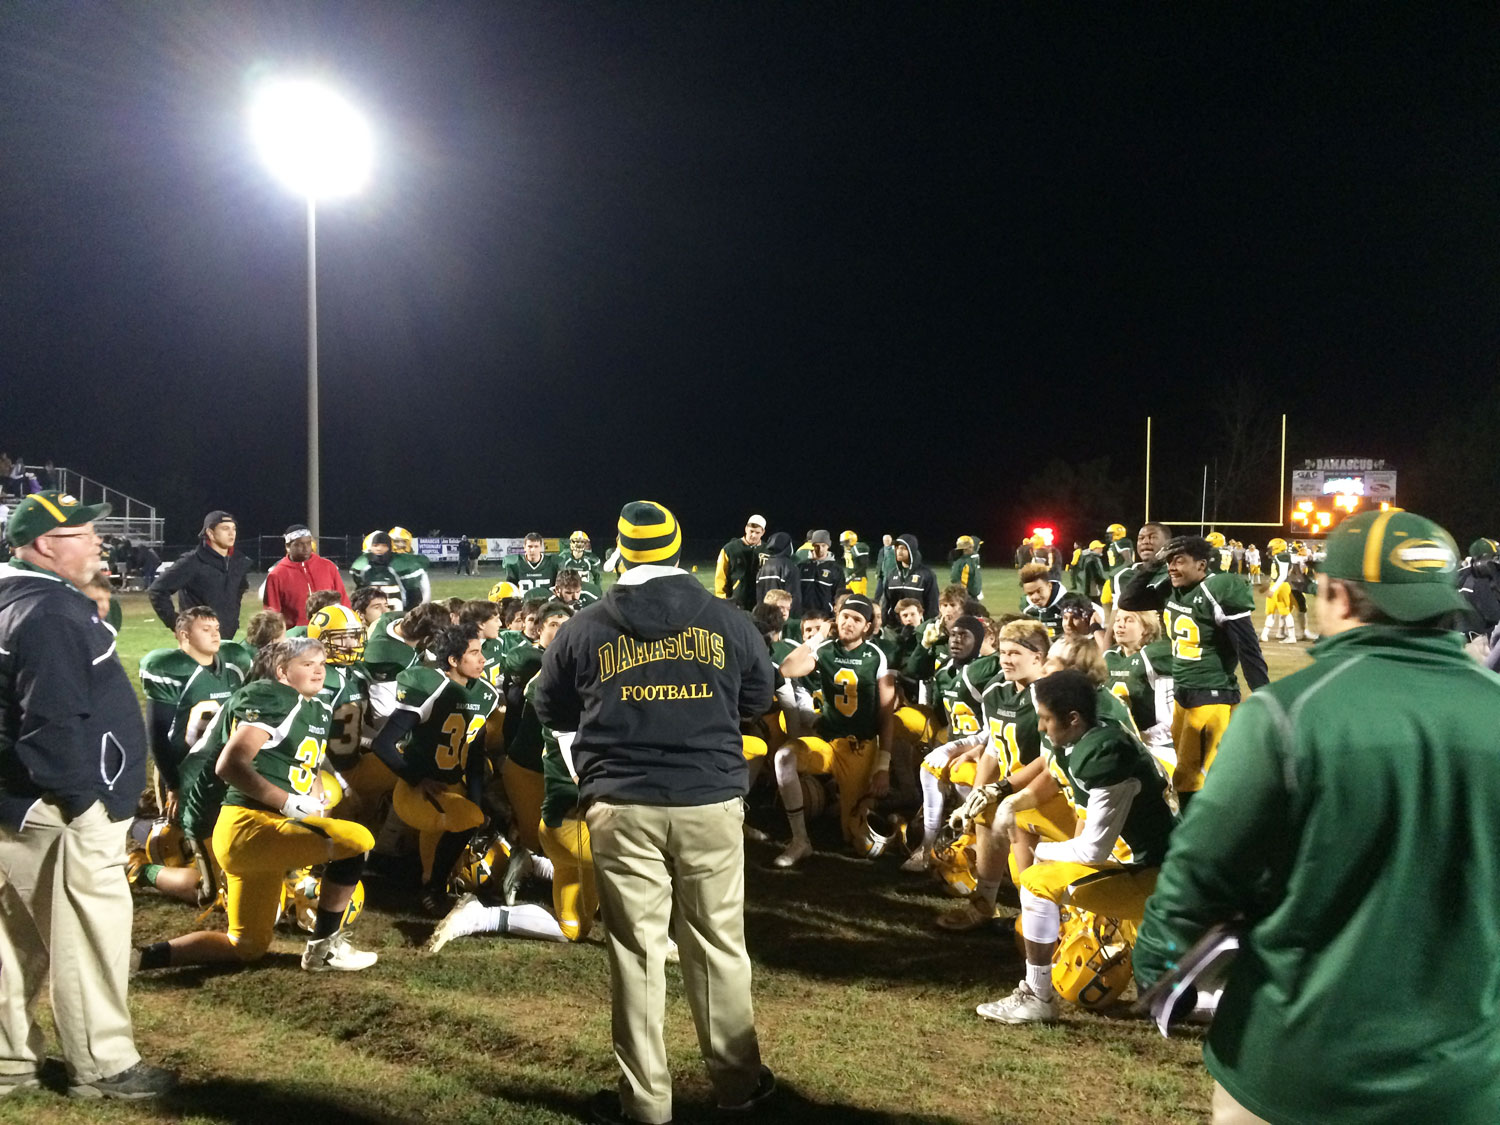 Top high school football teams fight for coveted state titles